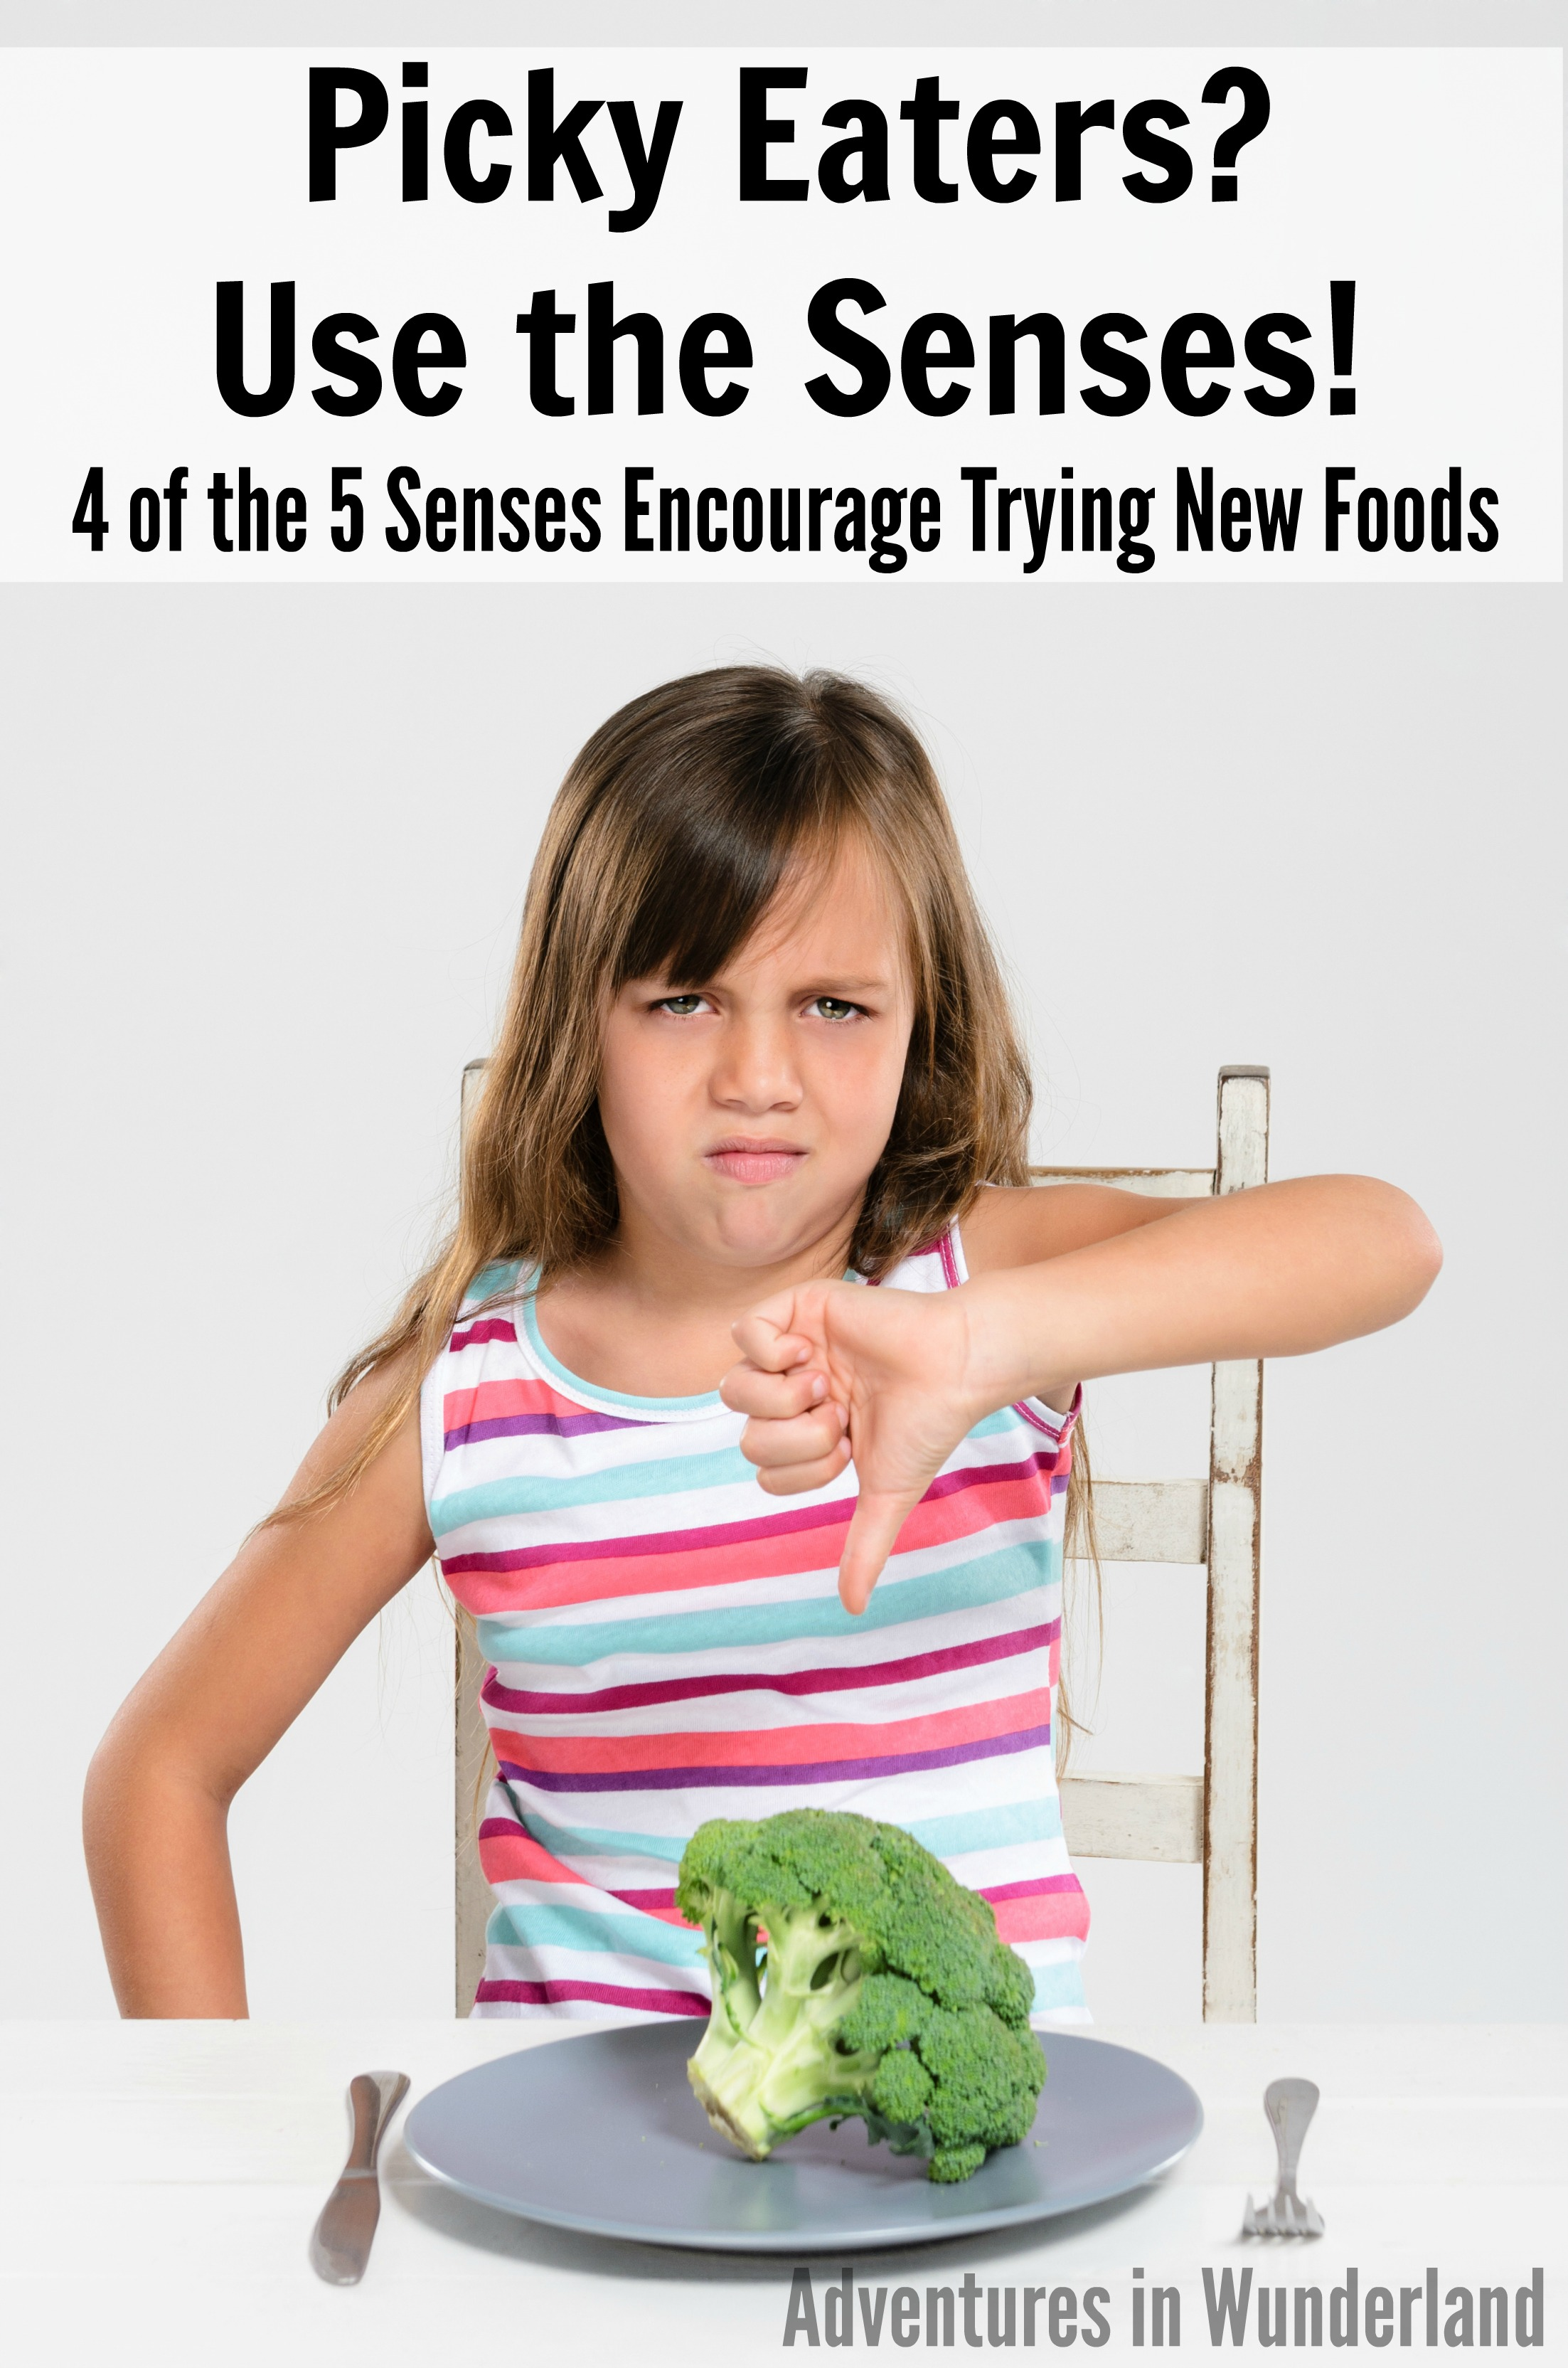 4 of 5 Senses Encourage Picky Eaters to Try New Foods